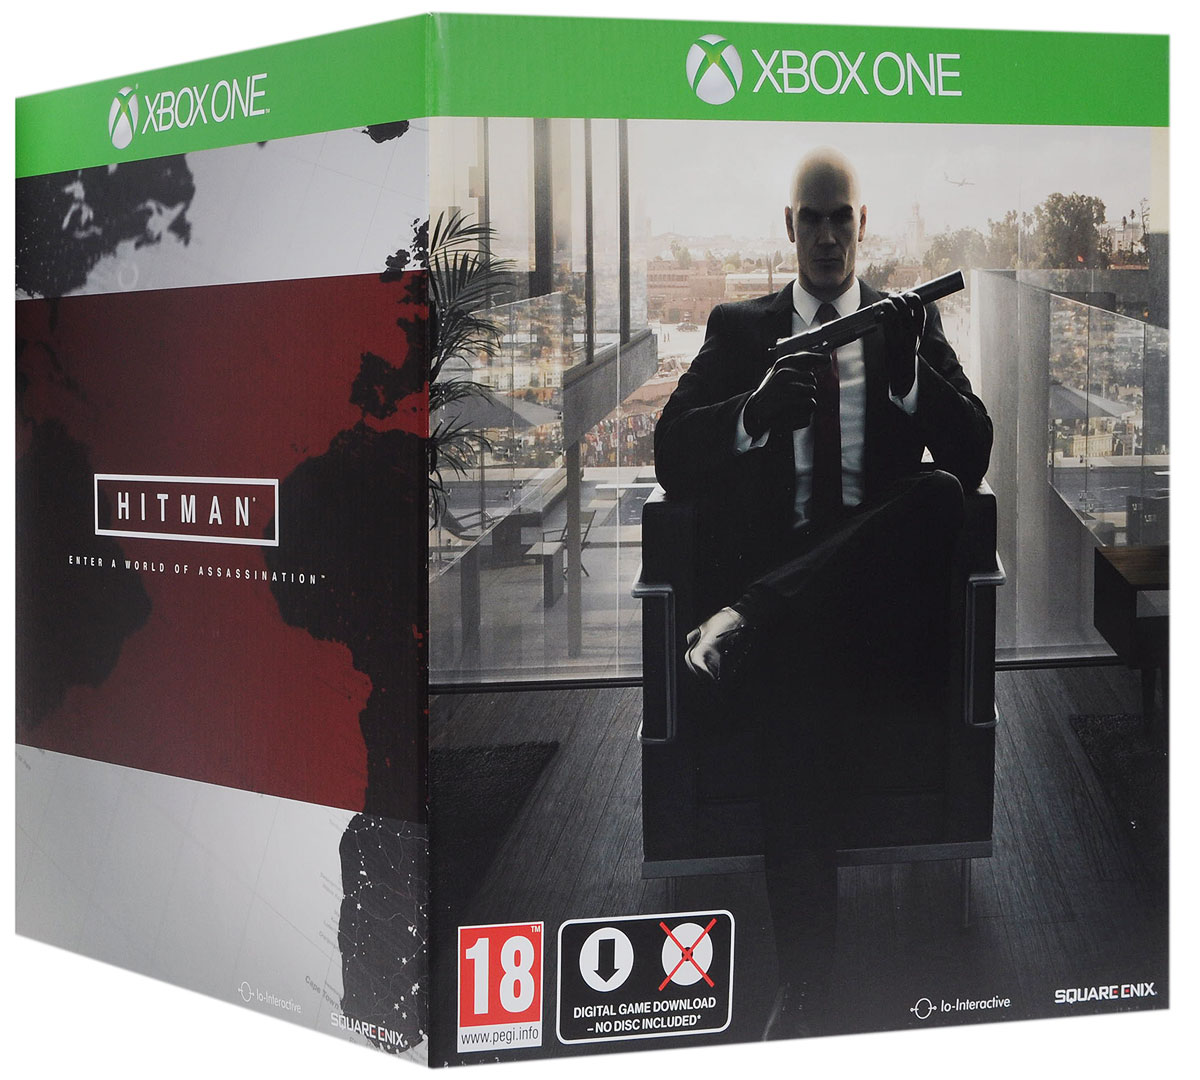 Hitman. Digital Collectors Edition (Xbox One)